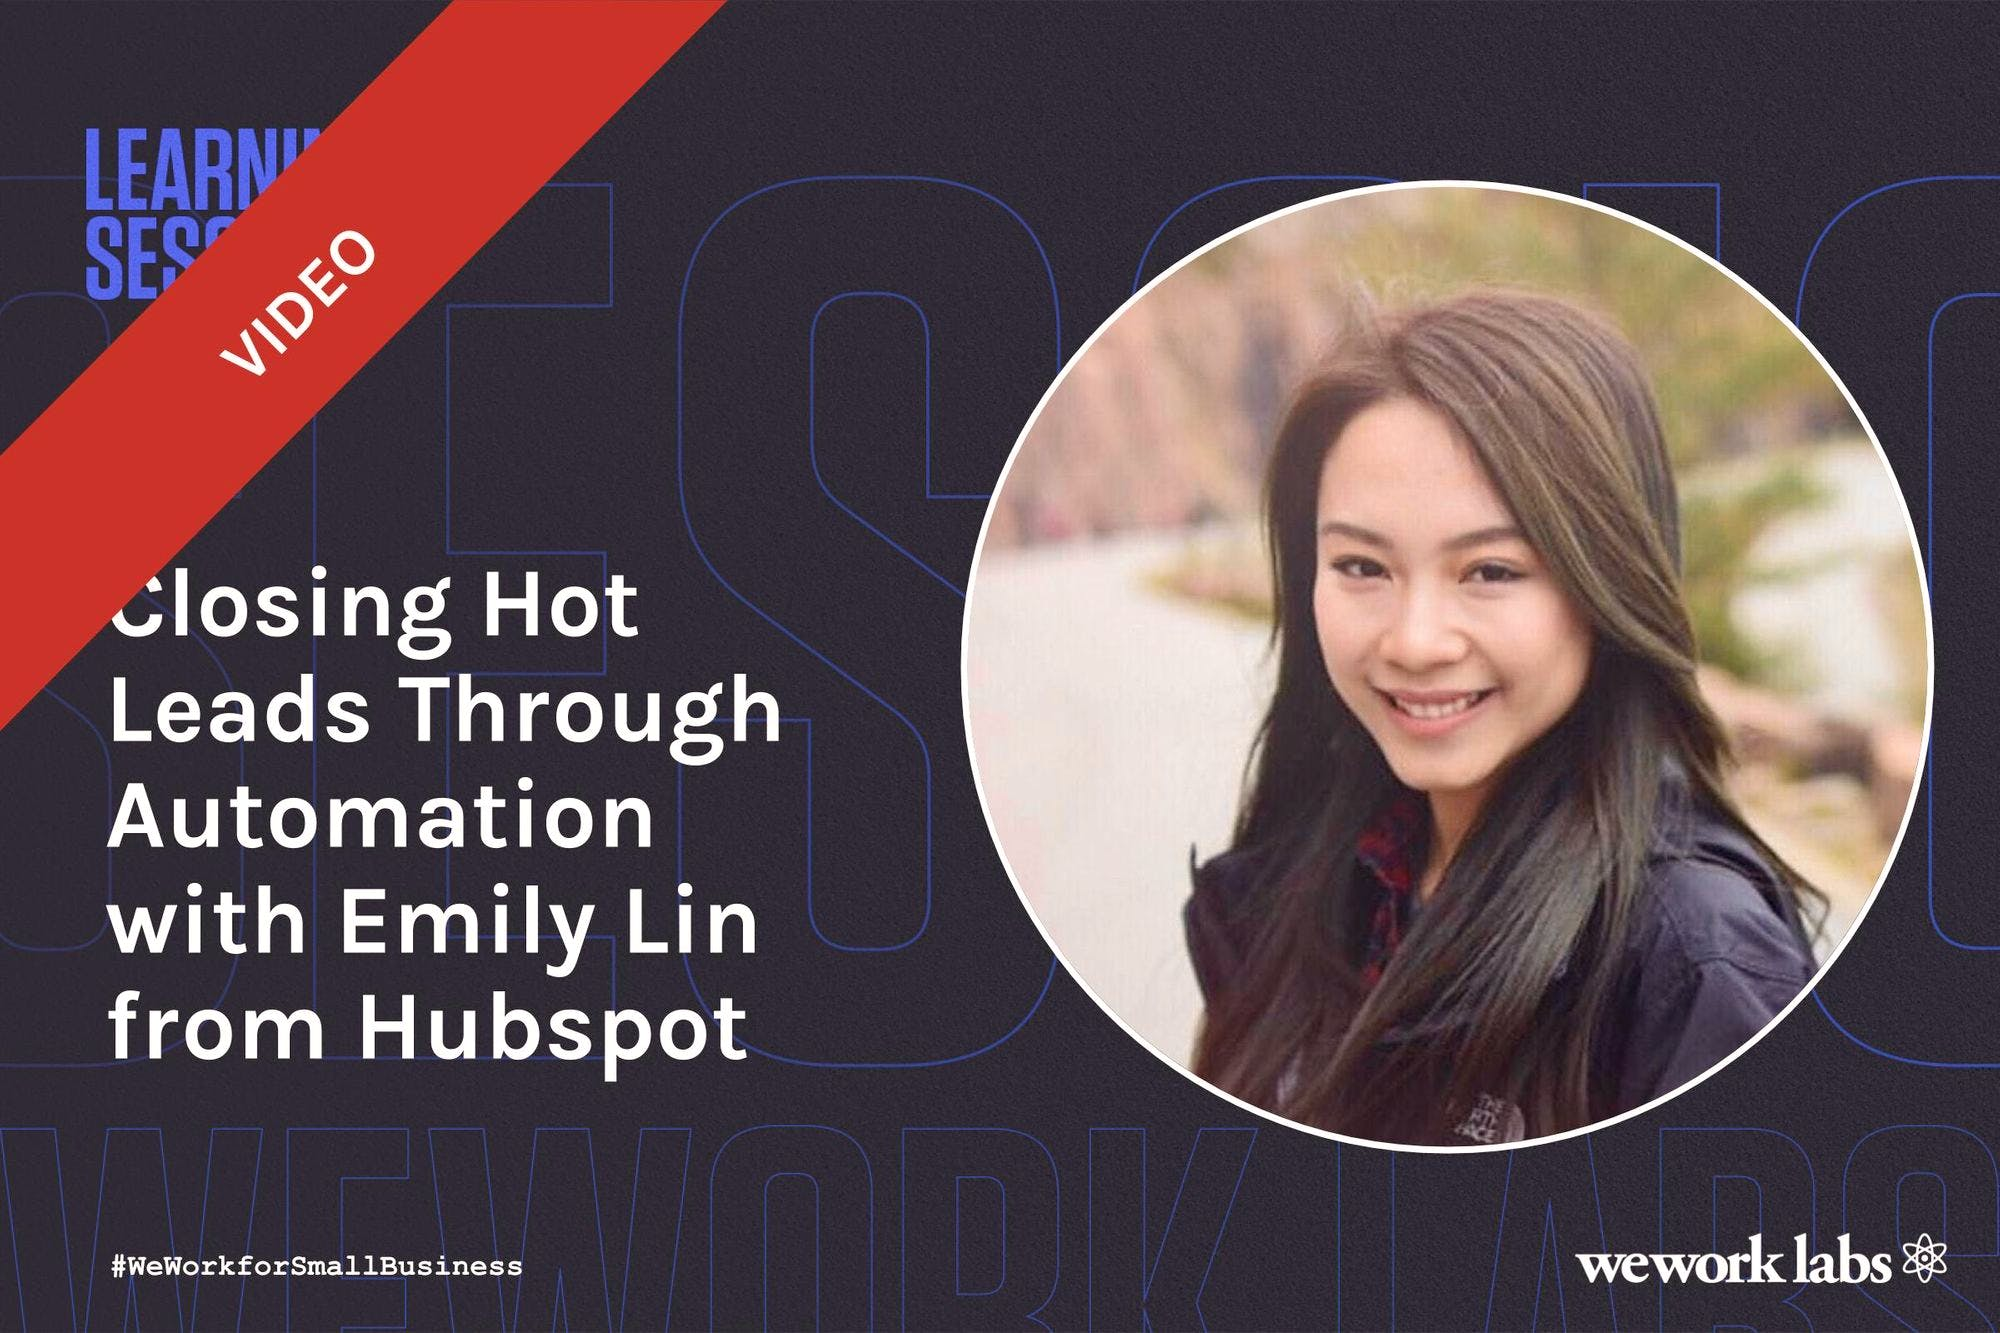 Closing Hot Leads Through Automation with Emily Lin from Hubspot